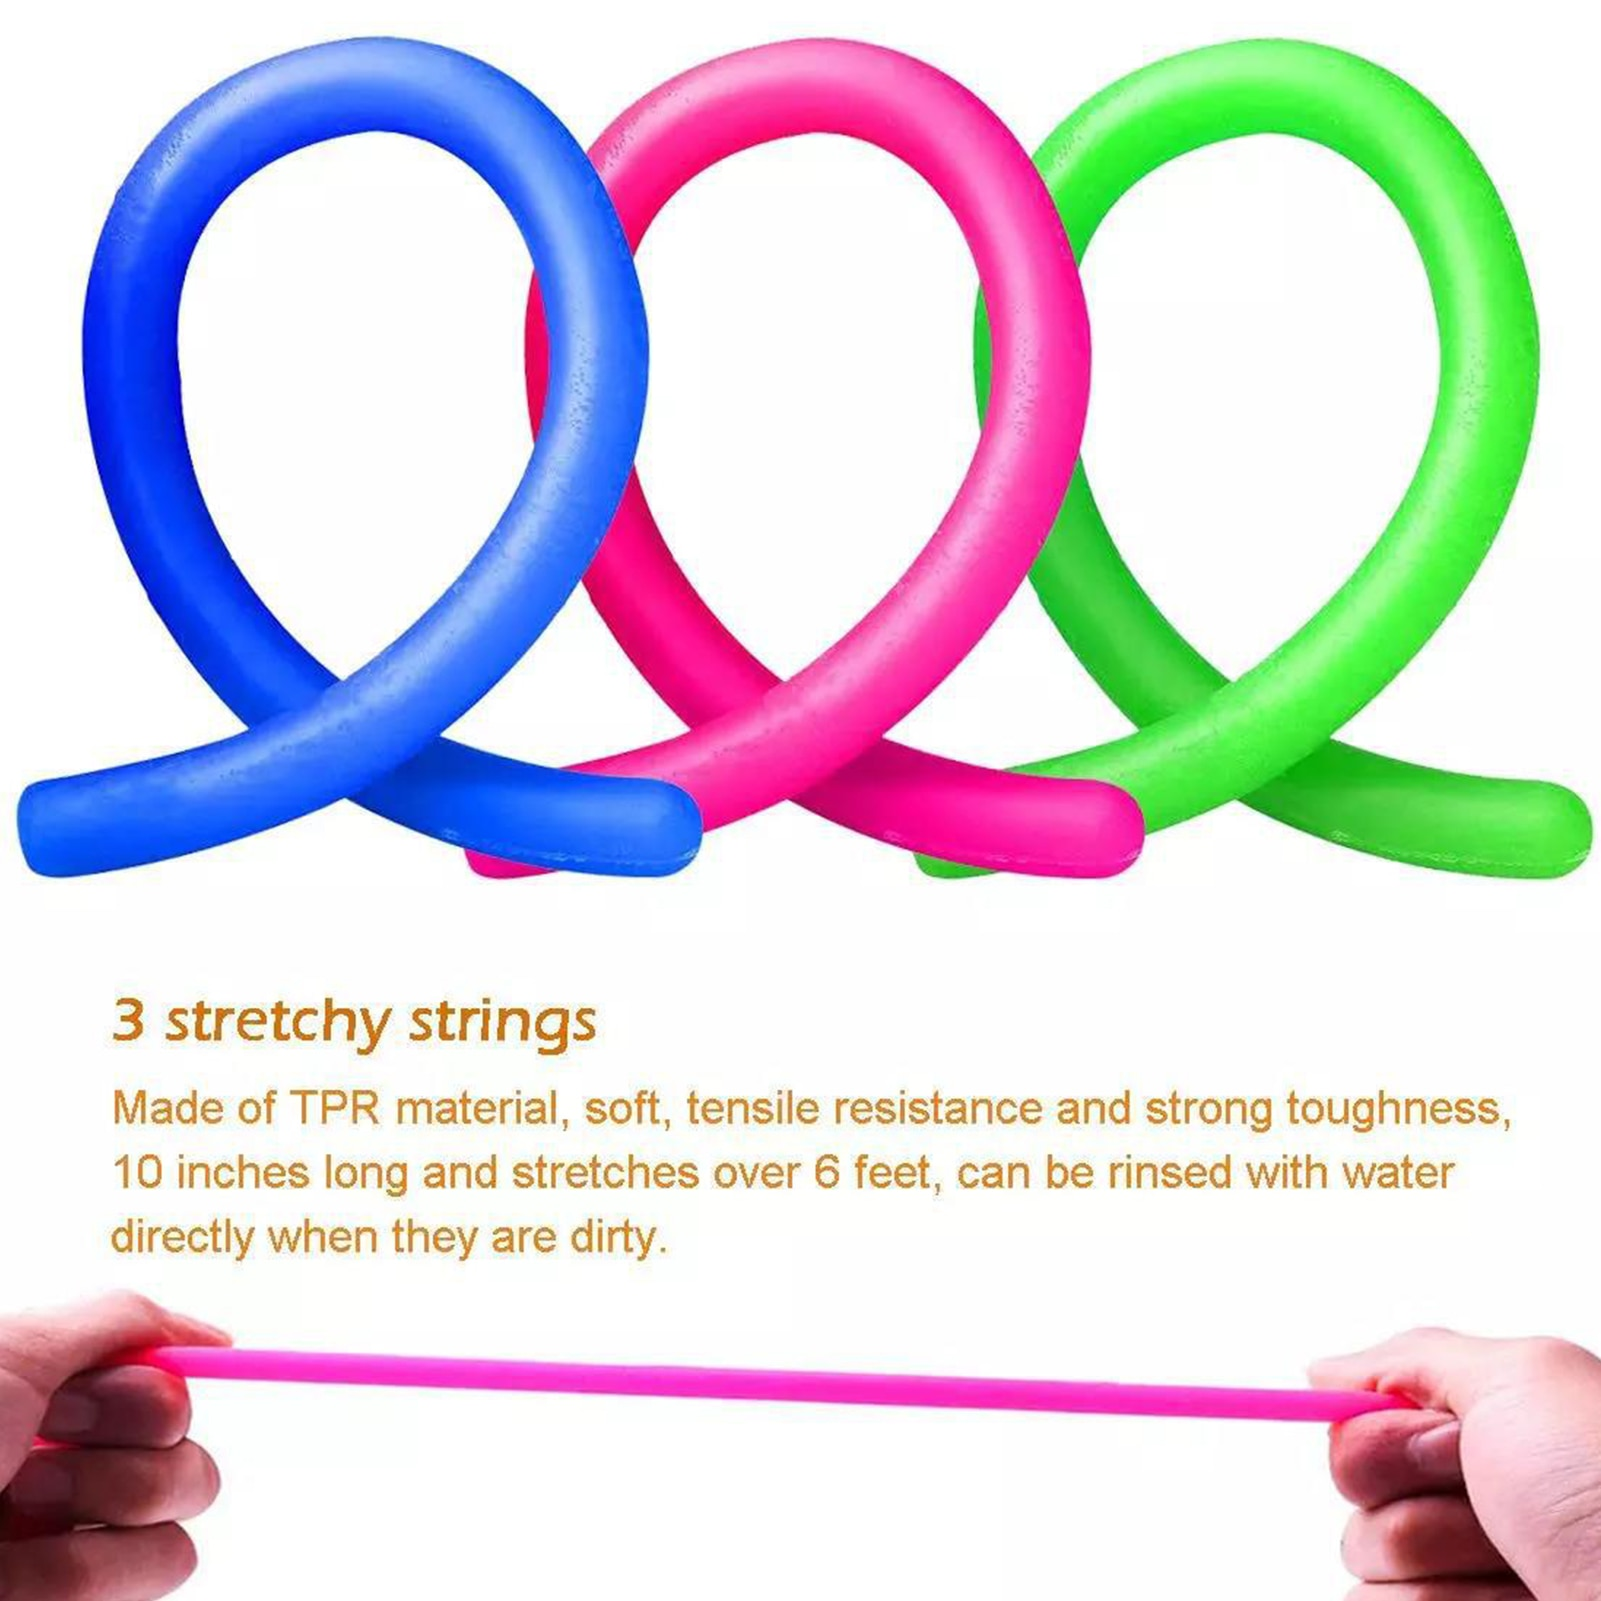 NEWEST Fidget Toys Sensory Pop Toy Antistress Simple Dimple Anti-stress Pack Stress Reliever Calming Hand Toys For Kids Adults enlarge